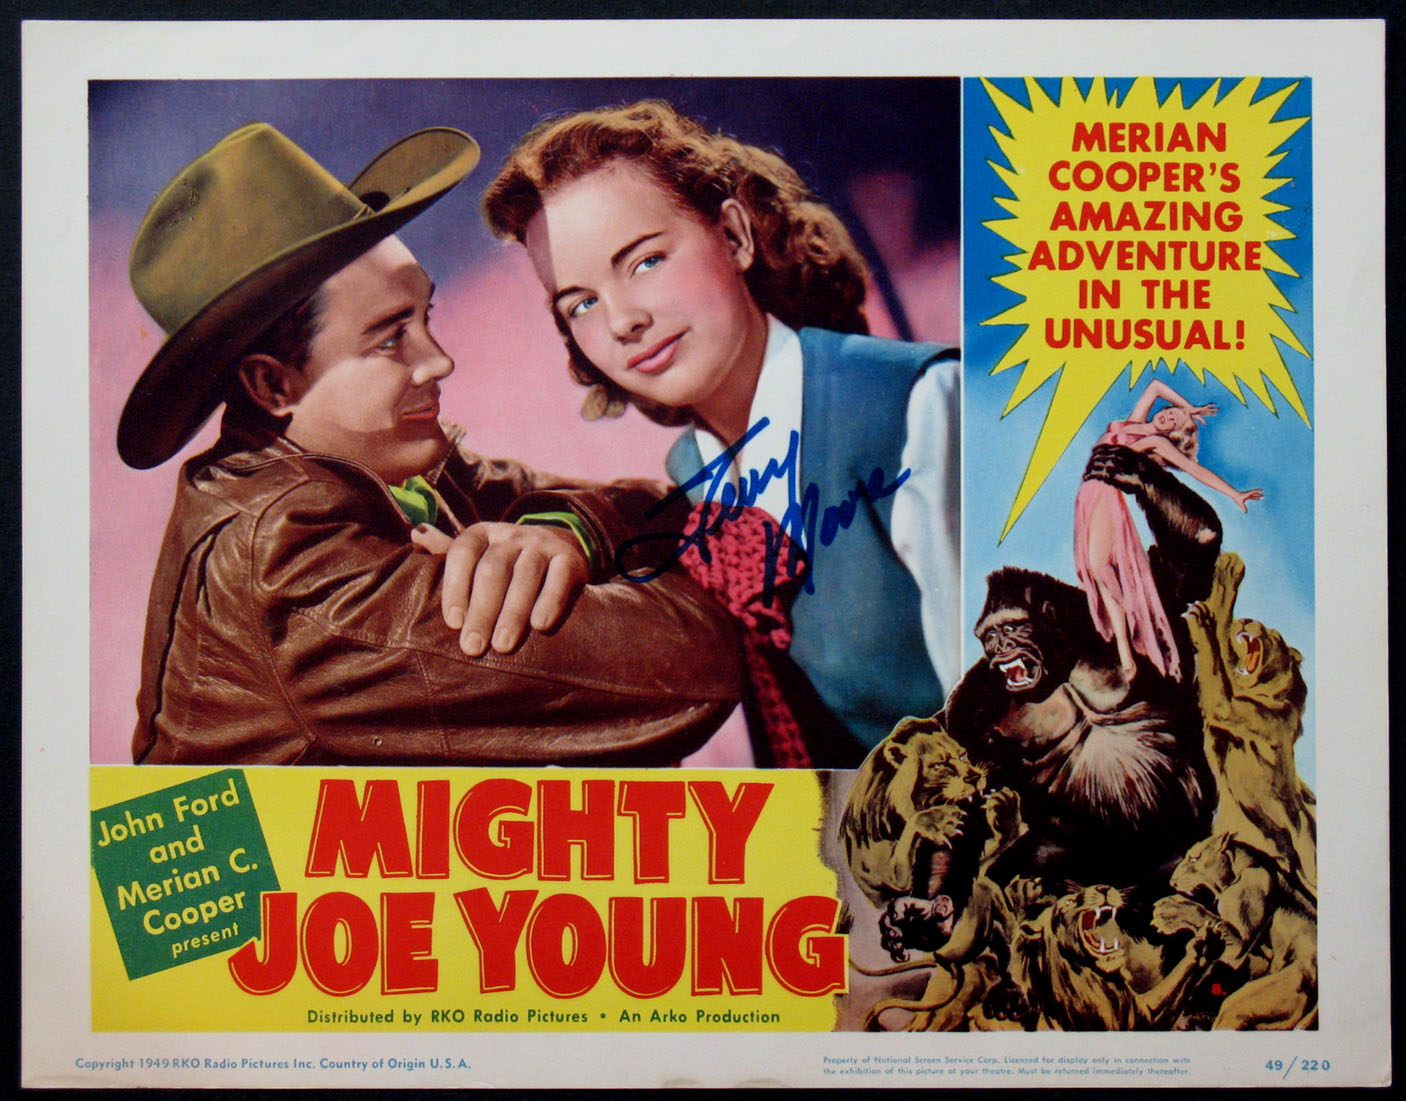 MIGHTY JOE YOUNG @ FilmPosters.com